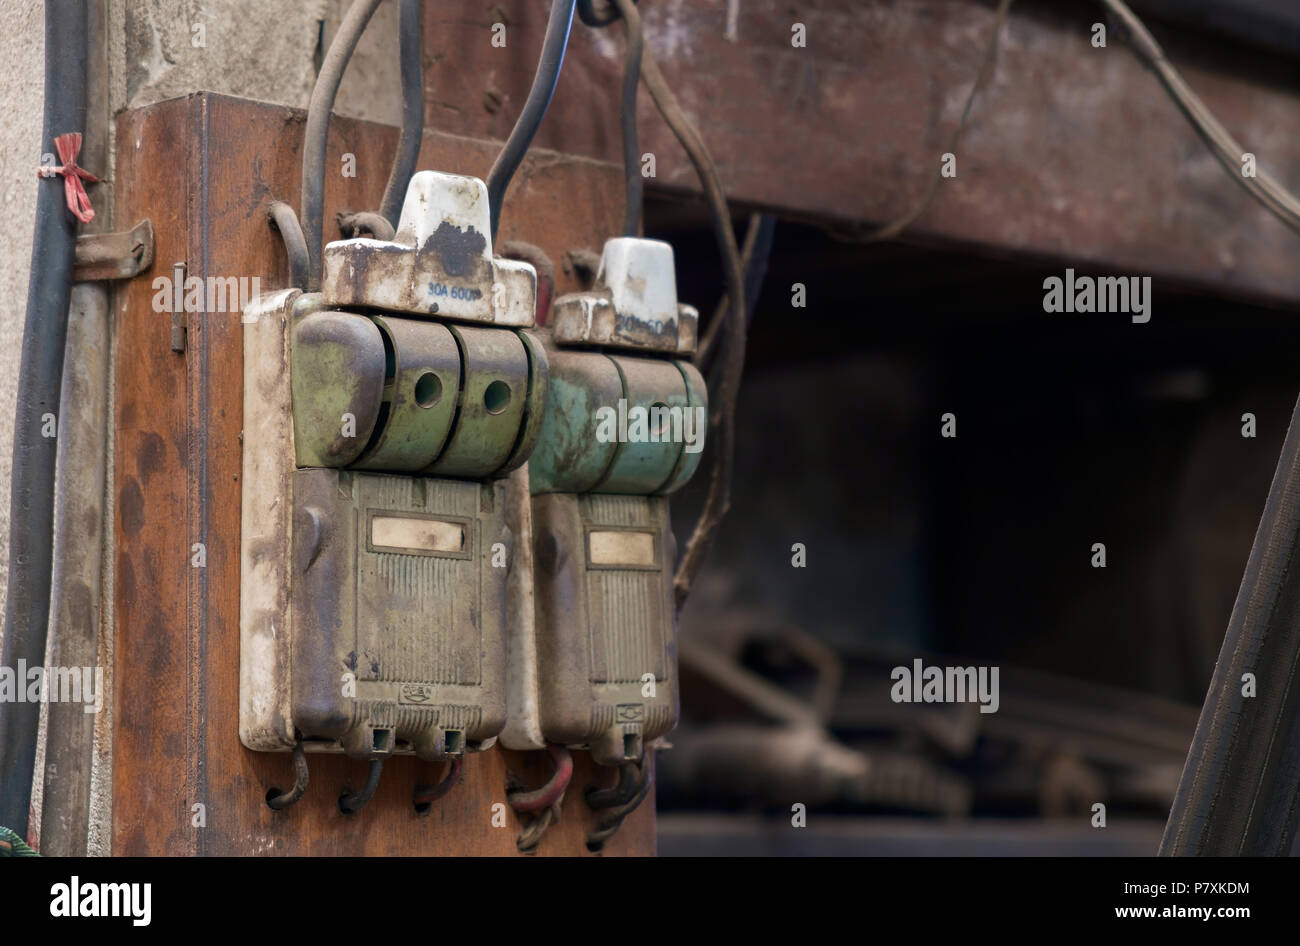 View of old and dirty switch in the factory. - Stock Image